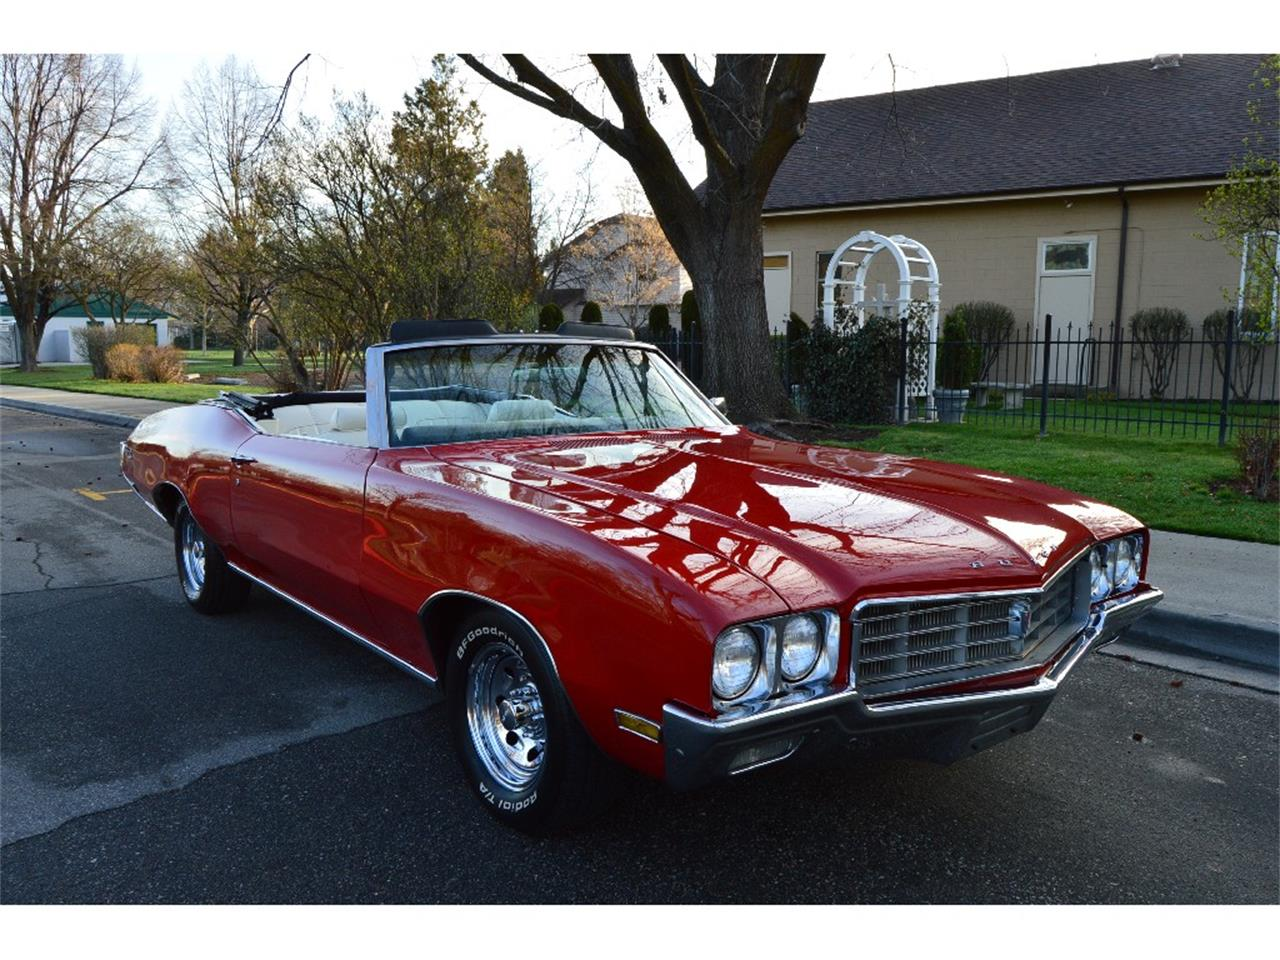 1970 buick skylark custom convertible for sale classiccars comlarge picture of \u002770 skylark custom convertible ku4p